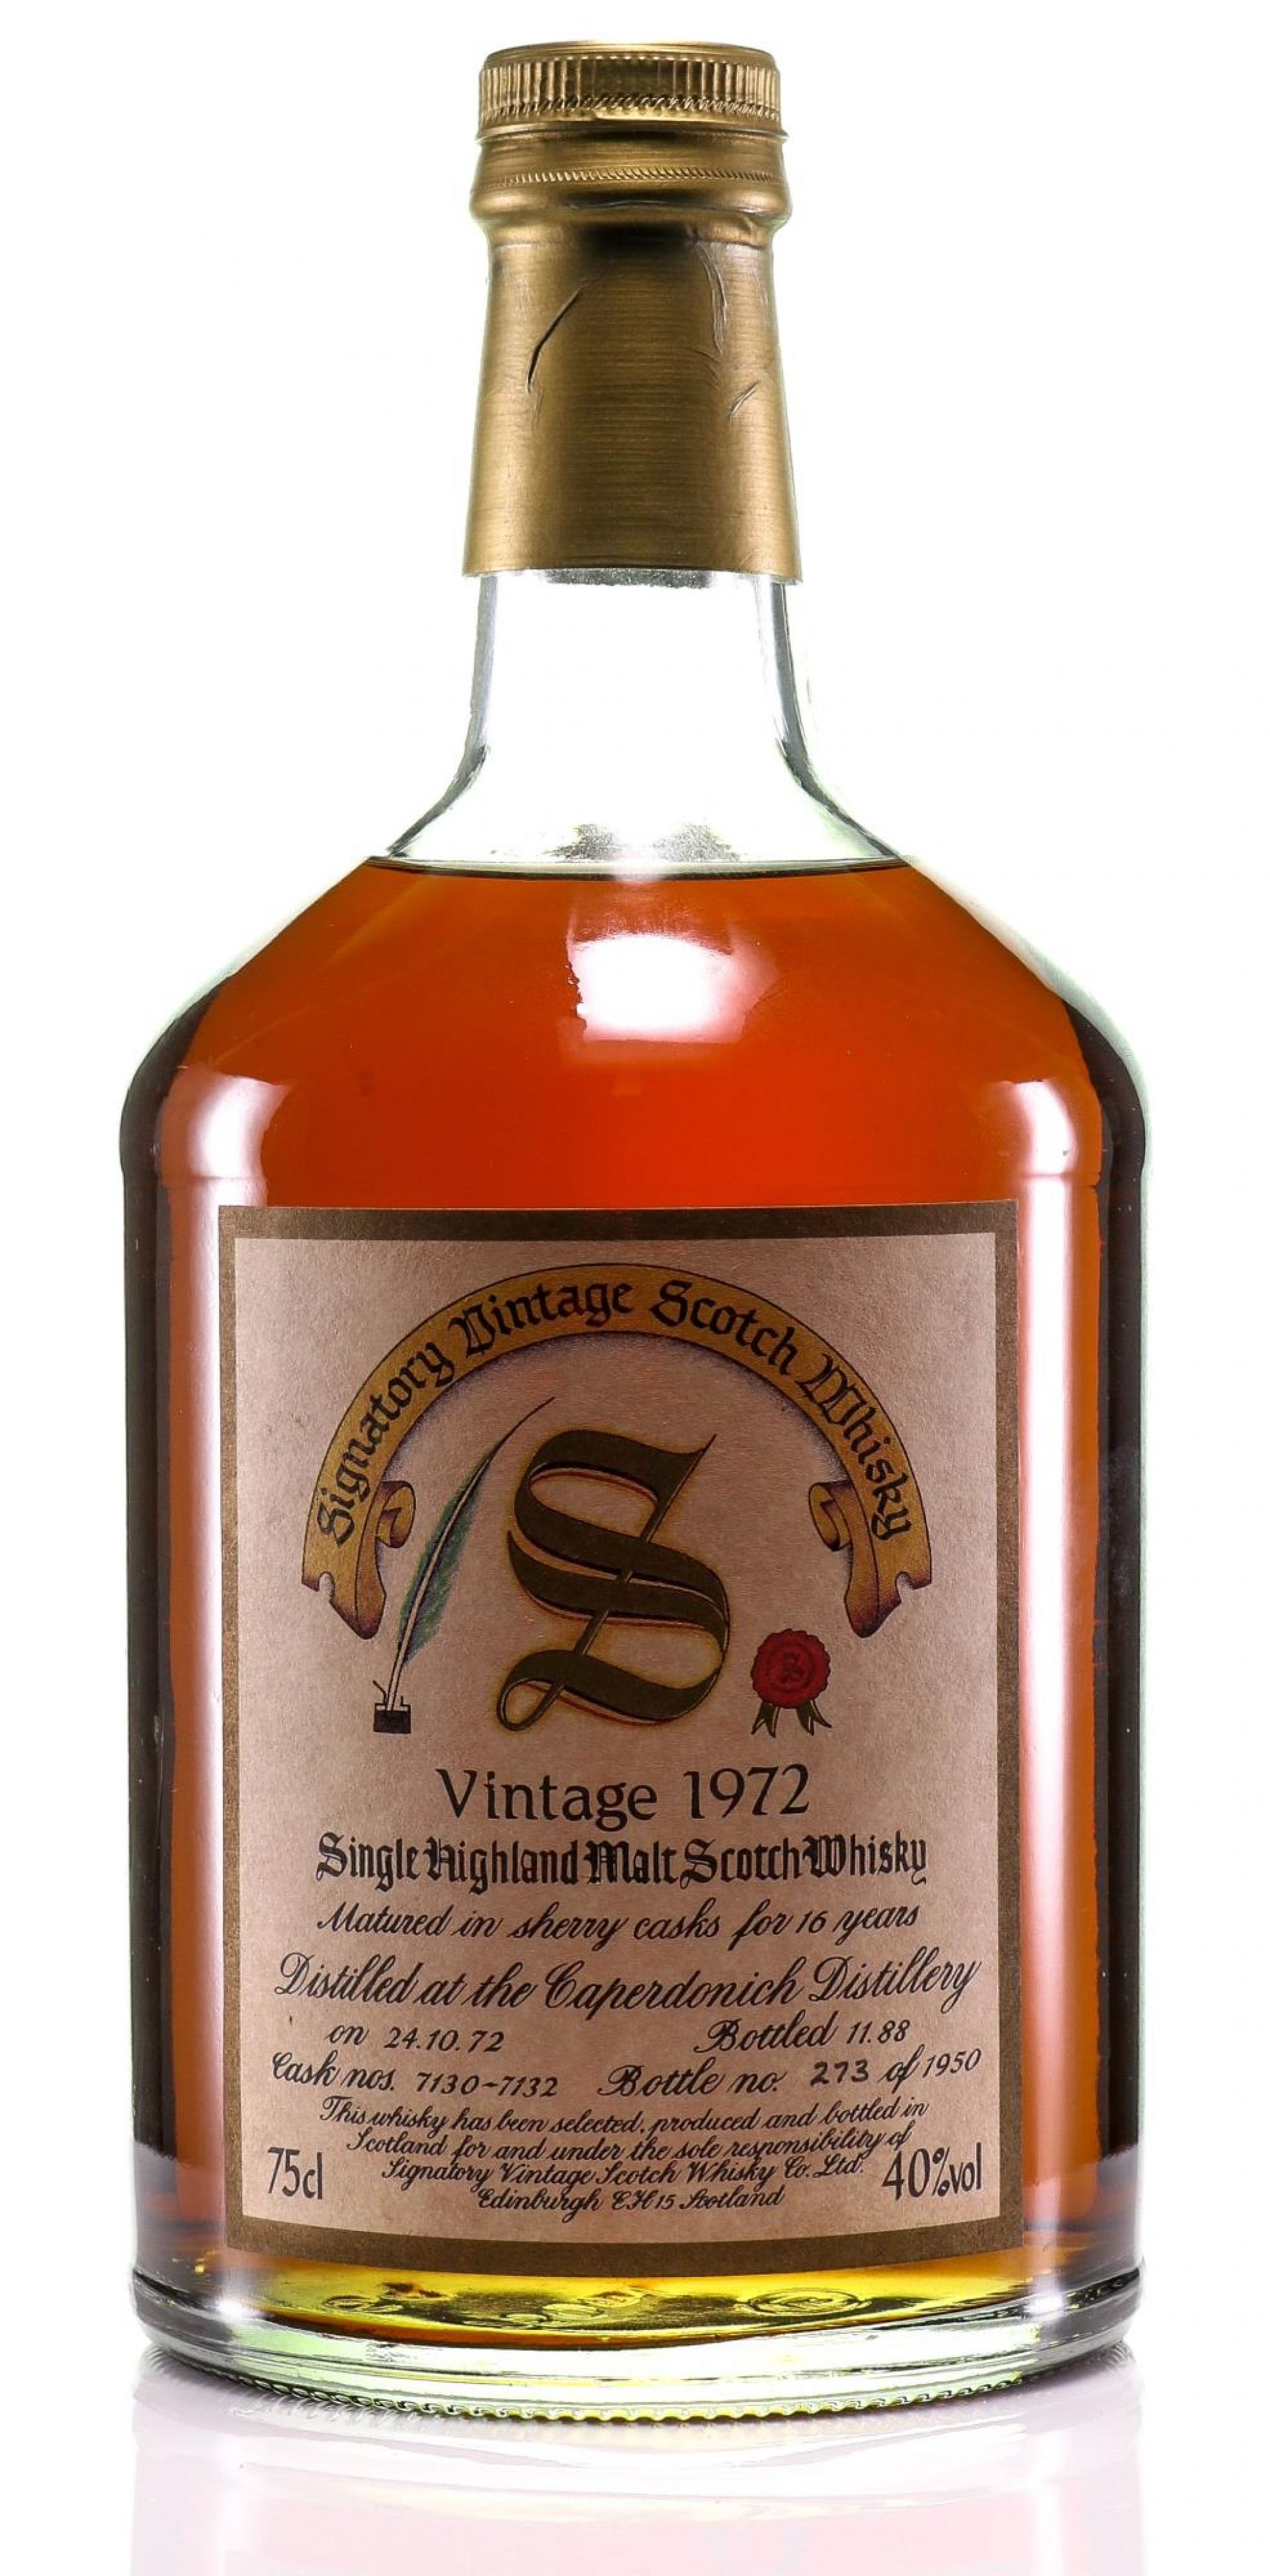 Whisky 1972 Caperdonich Signatory